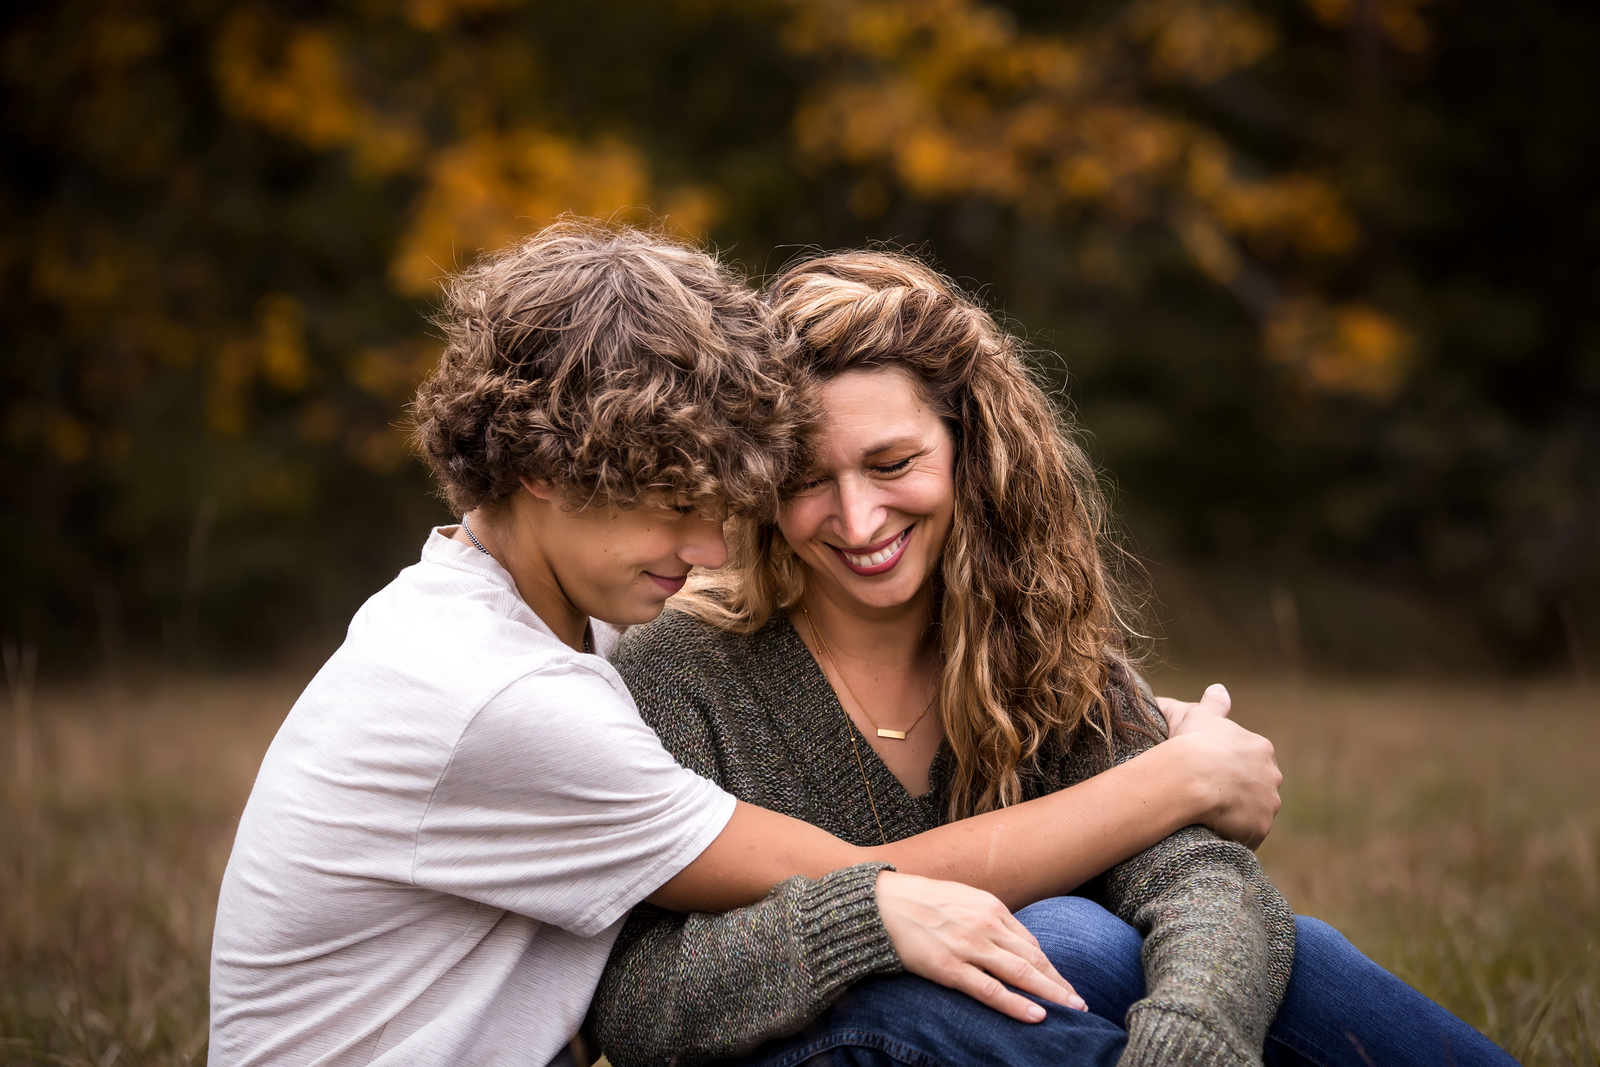 family photographer, columbus, ga, atlanta, wander years, teen son hugging mom, ker-fox photography_1124